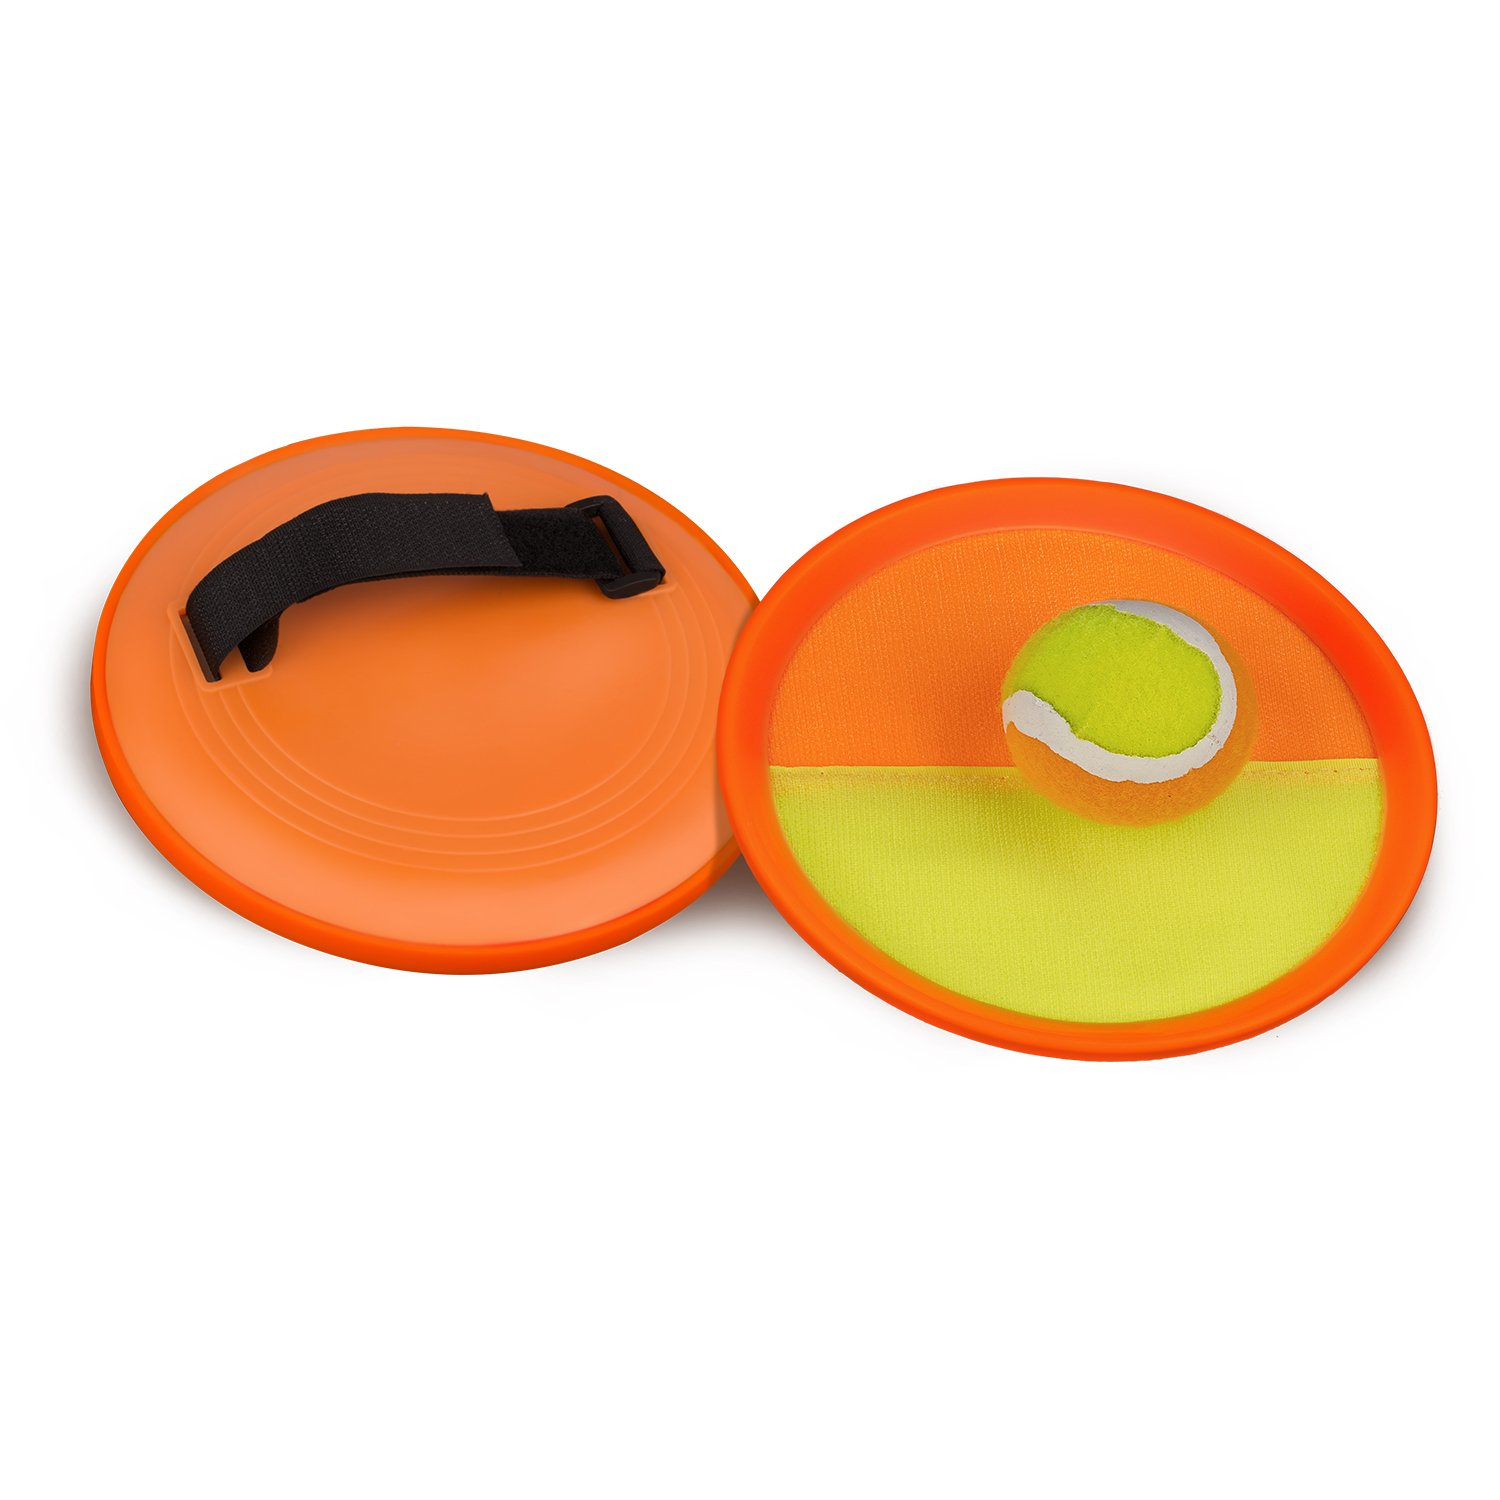 Abco Tech Paddle Toss and Catch Game Set - Self-Stick Disc Paddles and Toss Ball Sport Game - Equally Suitable Game for Kids by Abco Tech (Image #8)